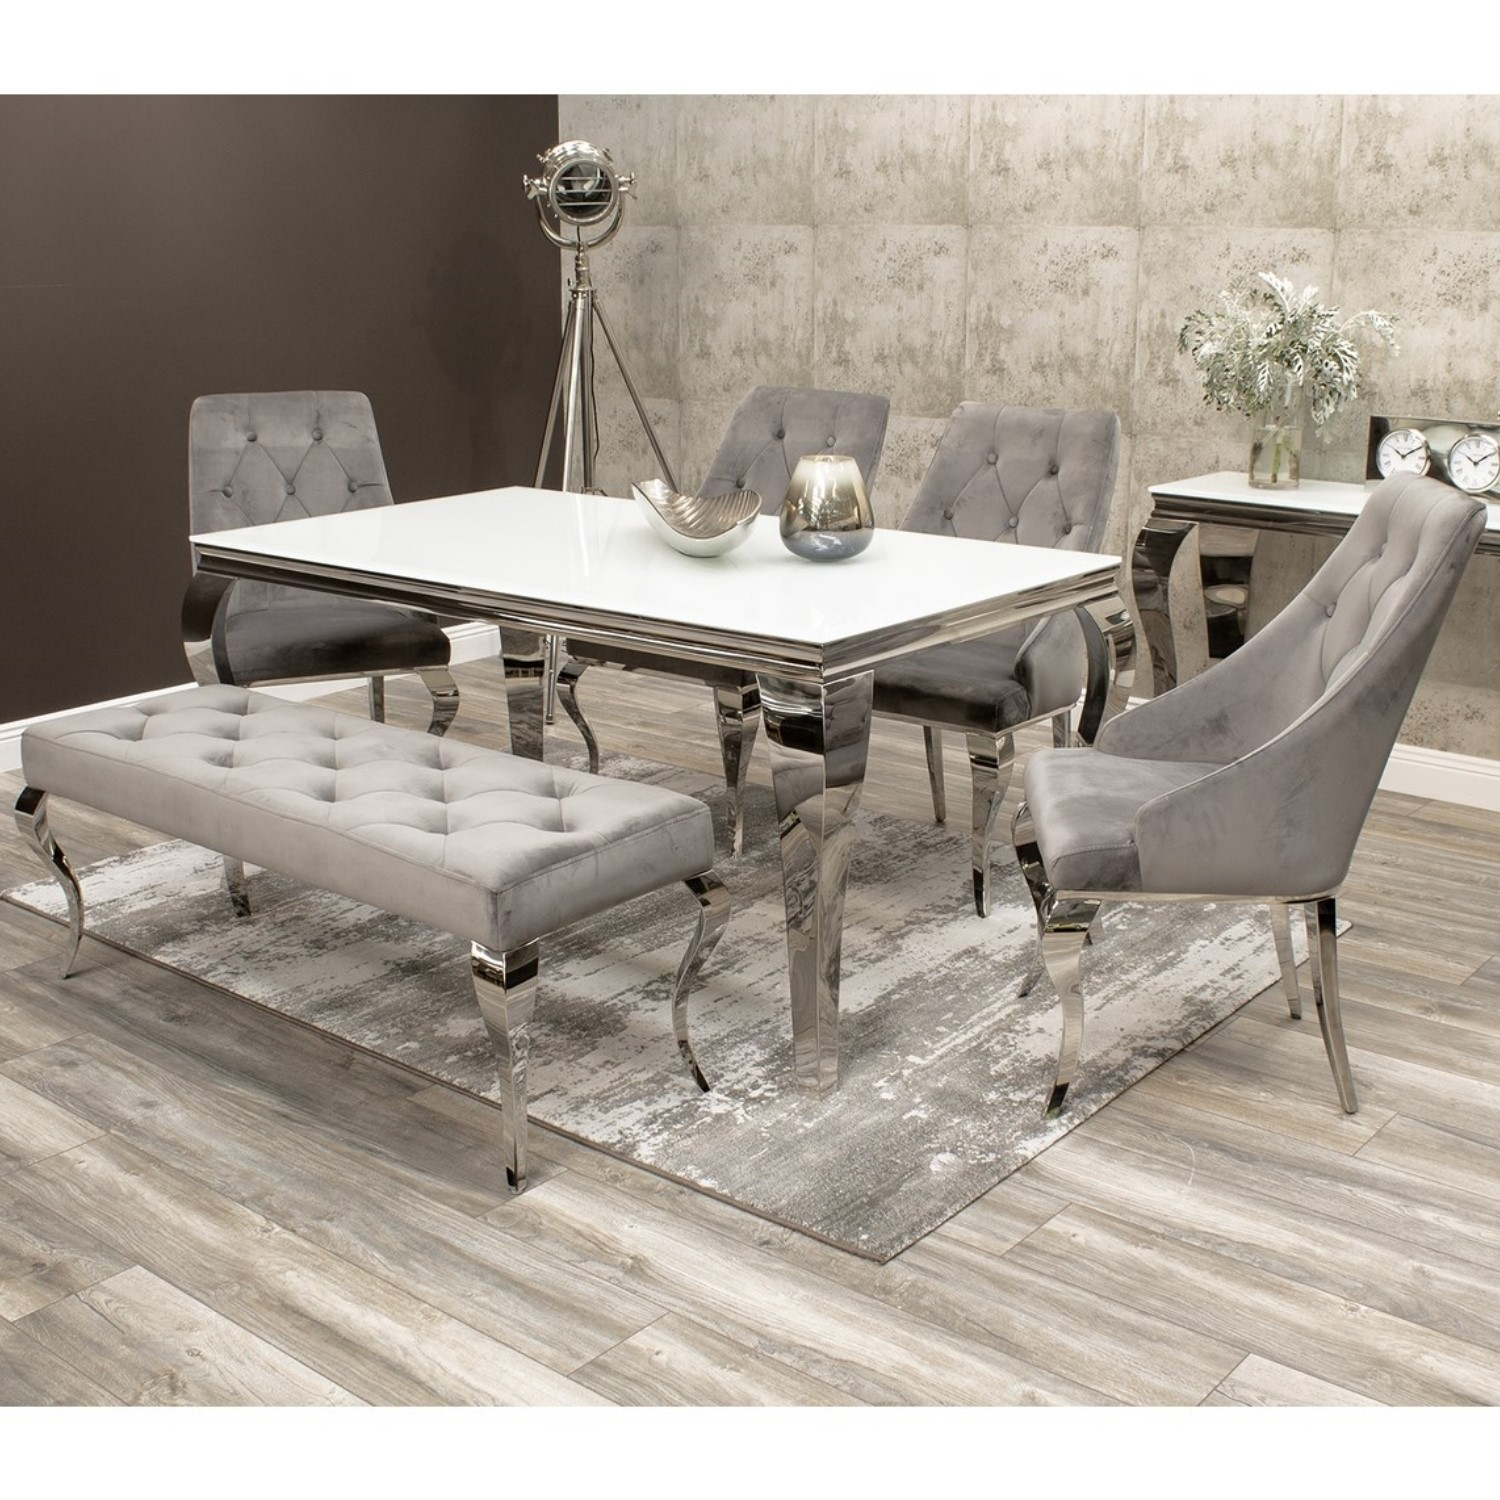 Louis White Dining Table 160cm With 4 Grey Velvet Chairs 1 Bench Mirrored Legs